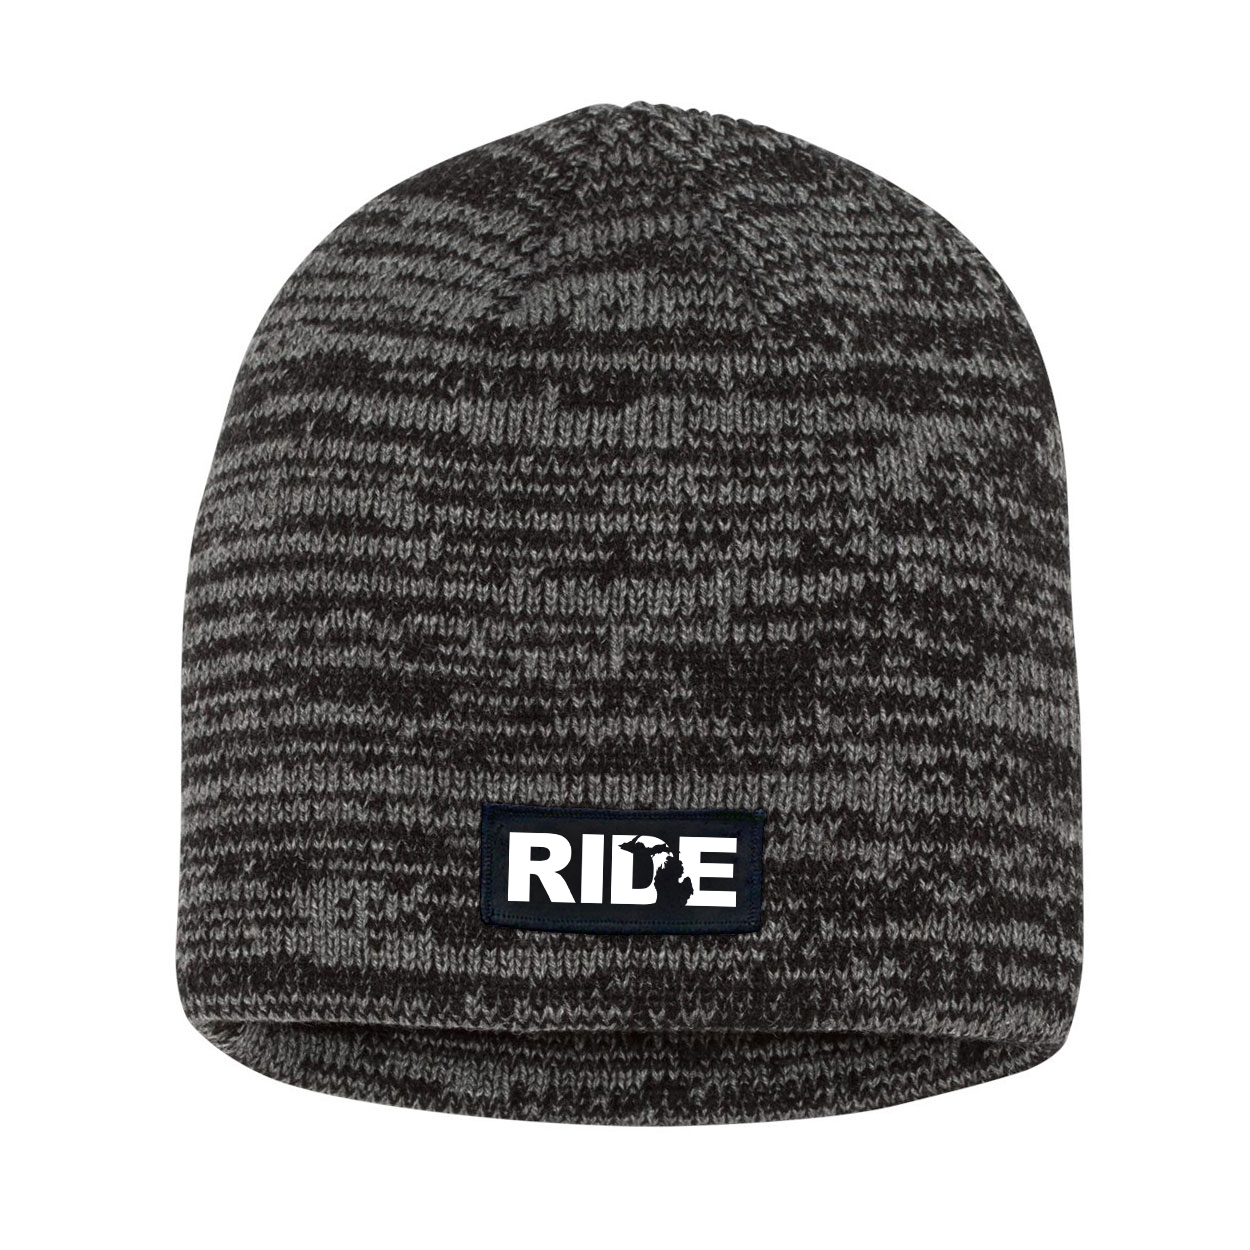 Ride Michigan Night Out Woven Patch Skully Marled Knit Beanie Black/Gray (White Logo)